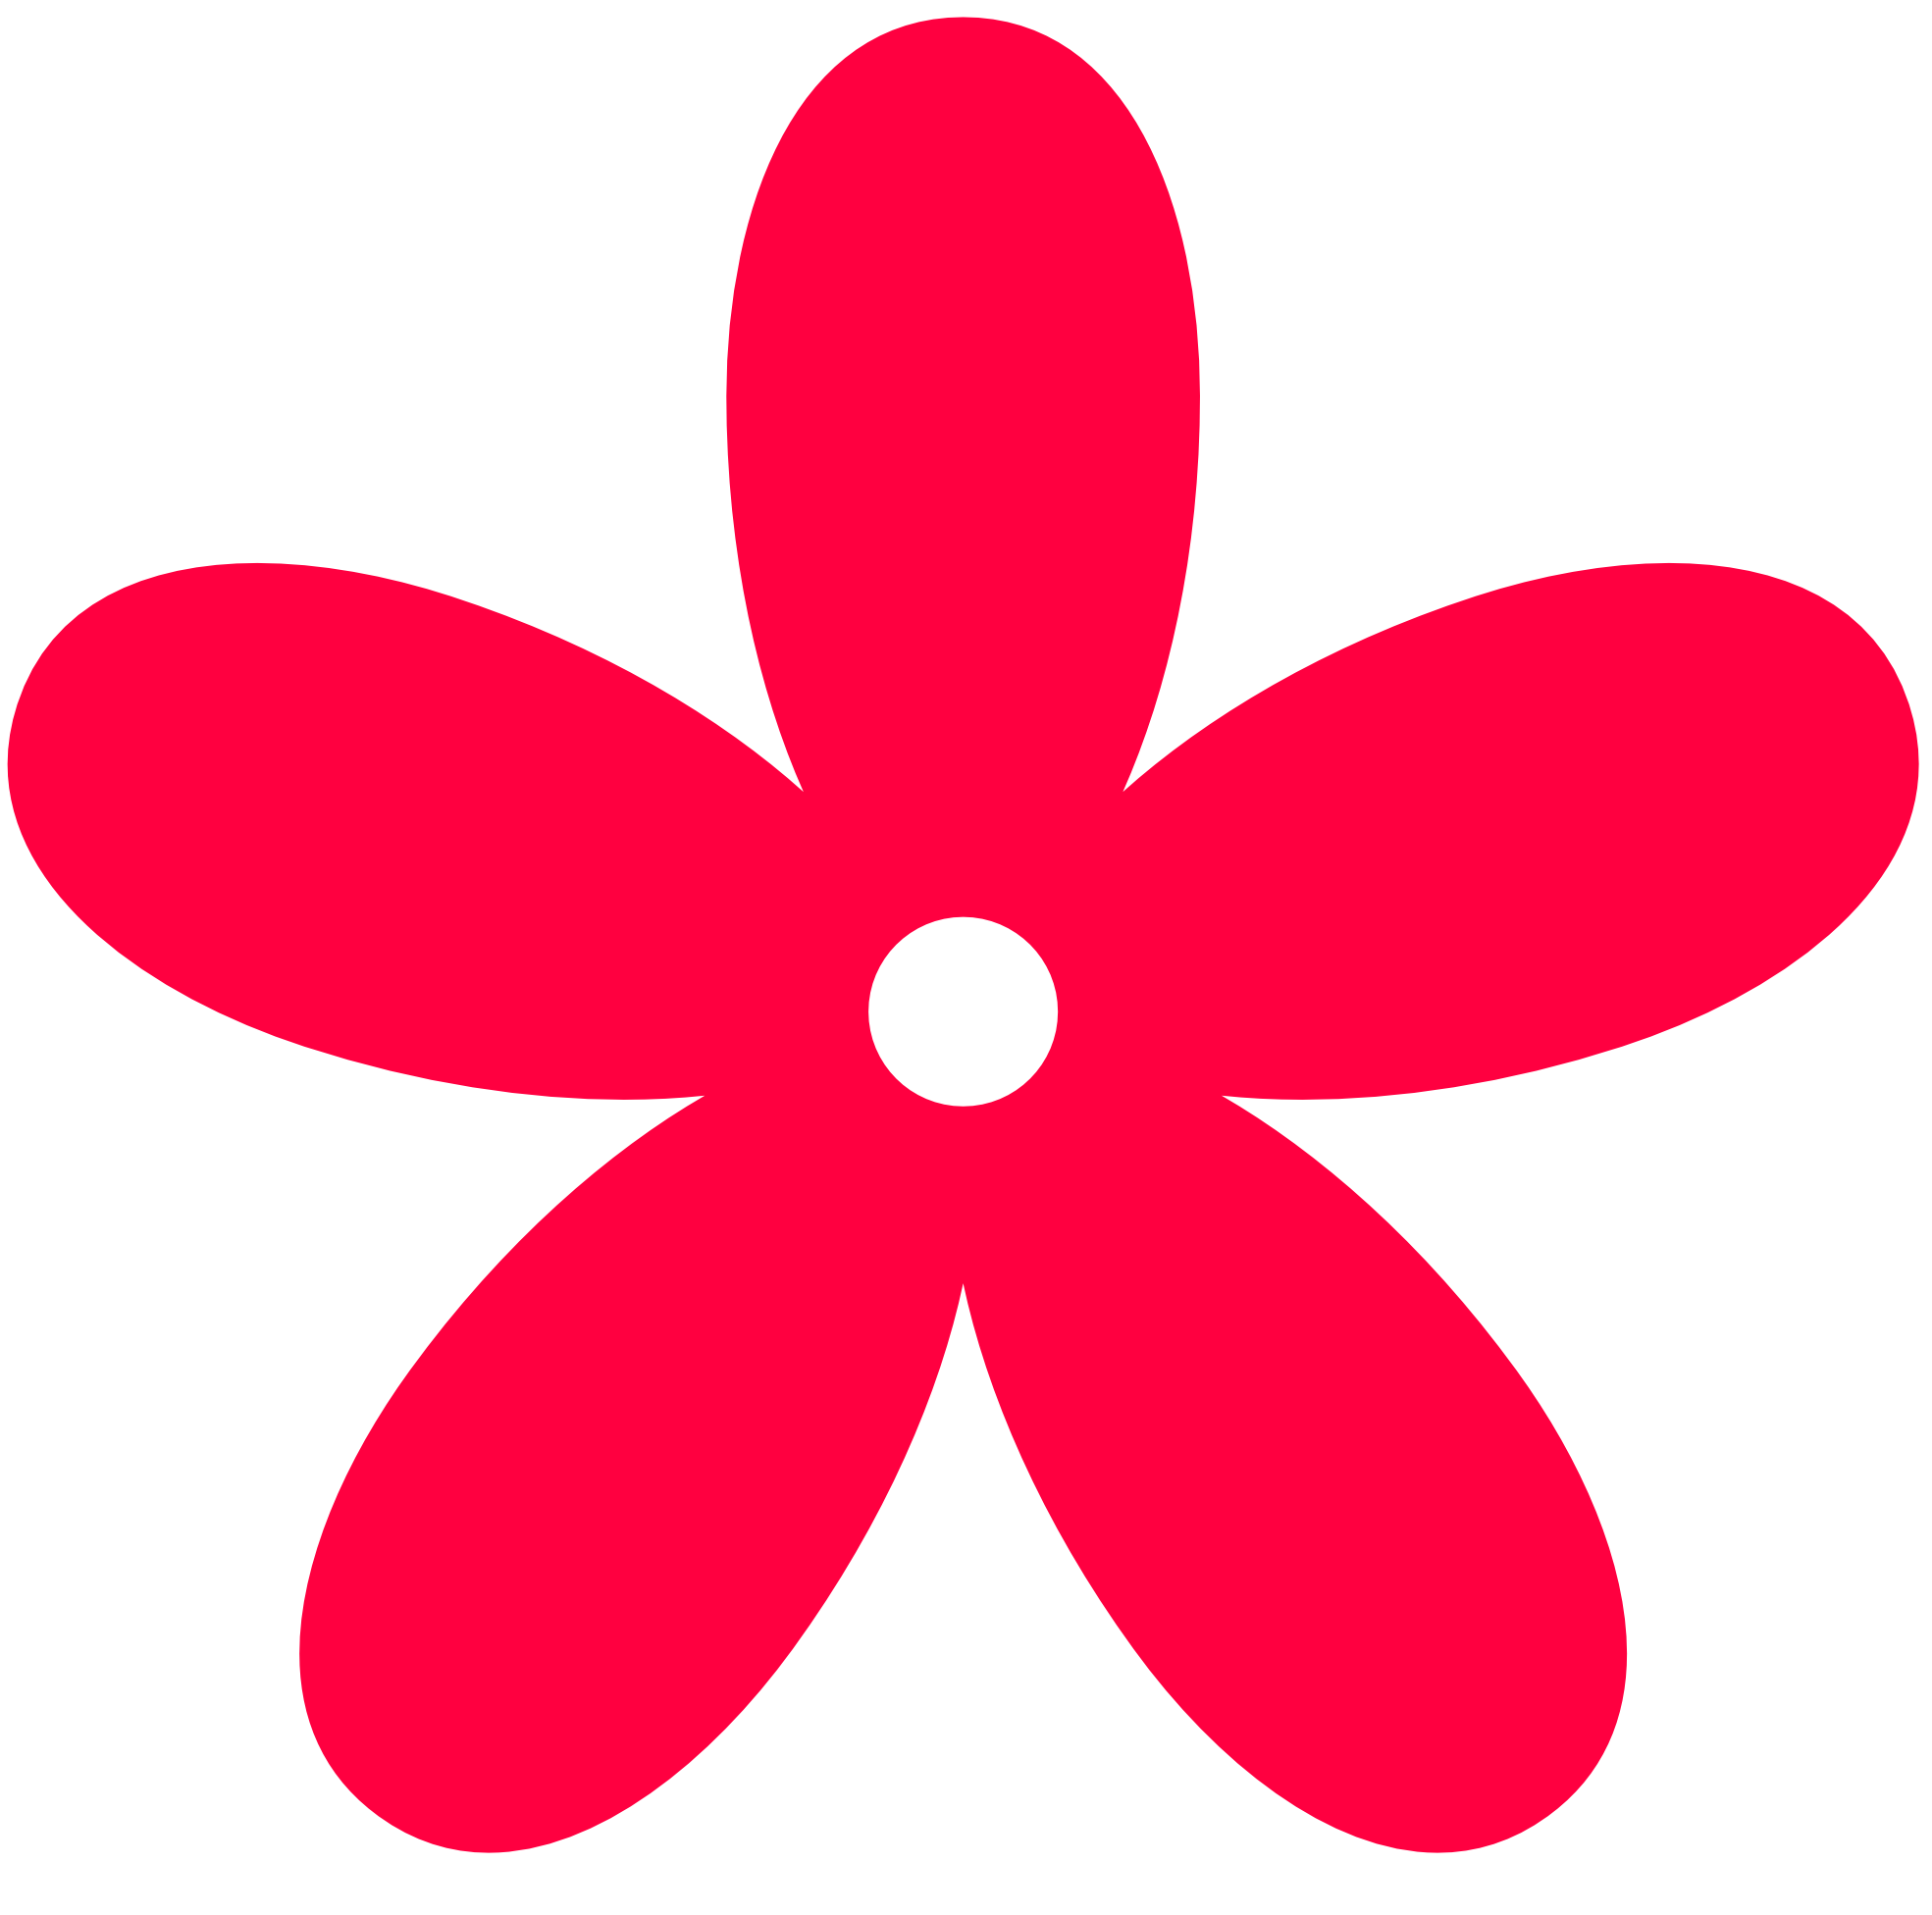 Red Flower svg #11, Download drawings